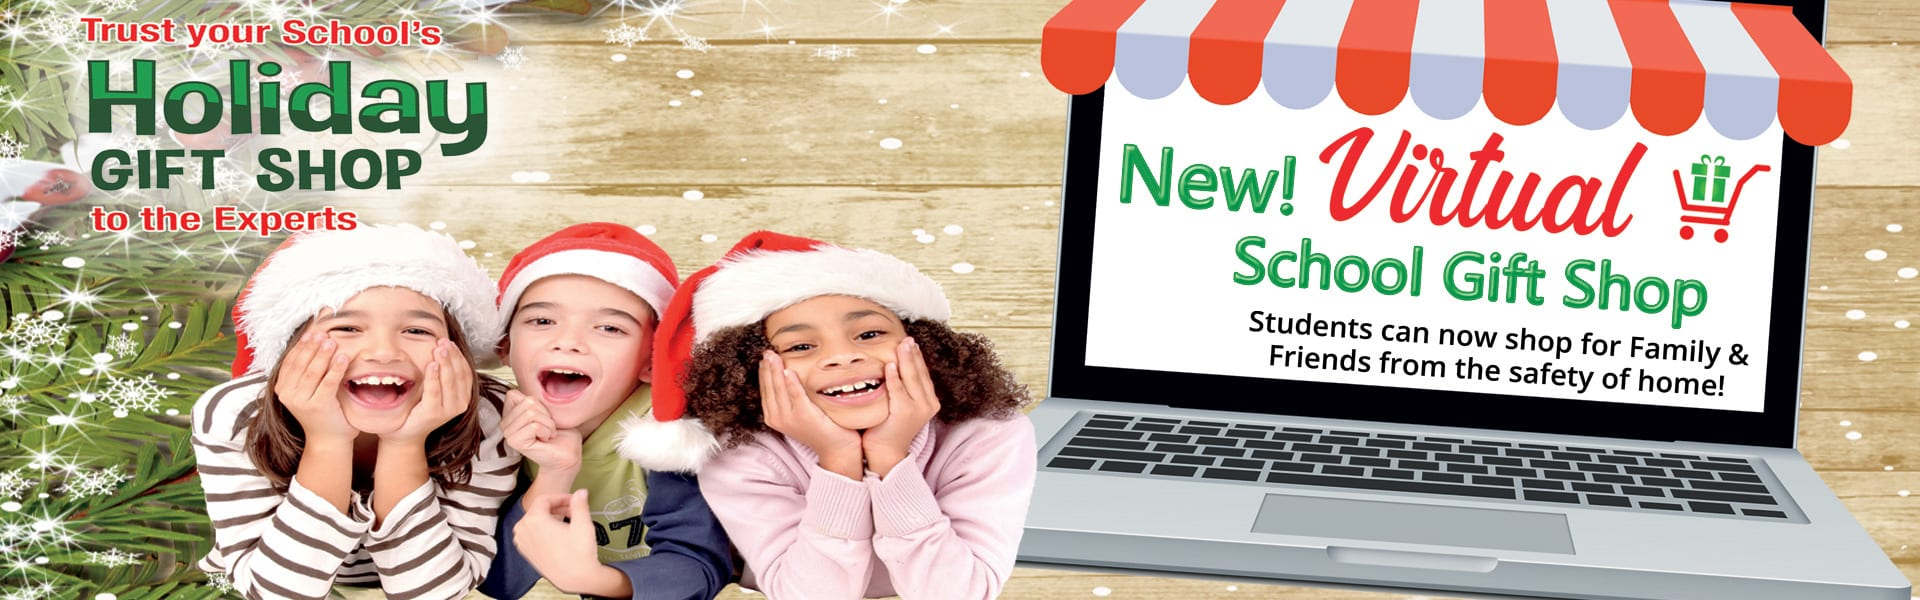 Virtual Holiday Gift Shop for children to buy presents